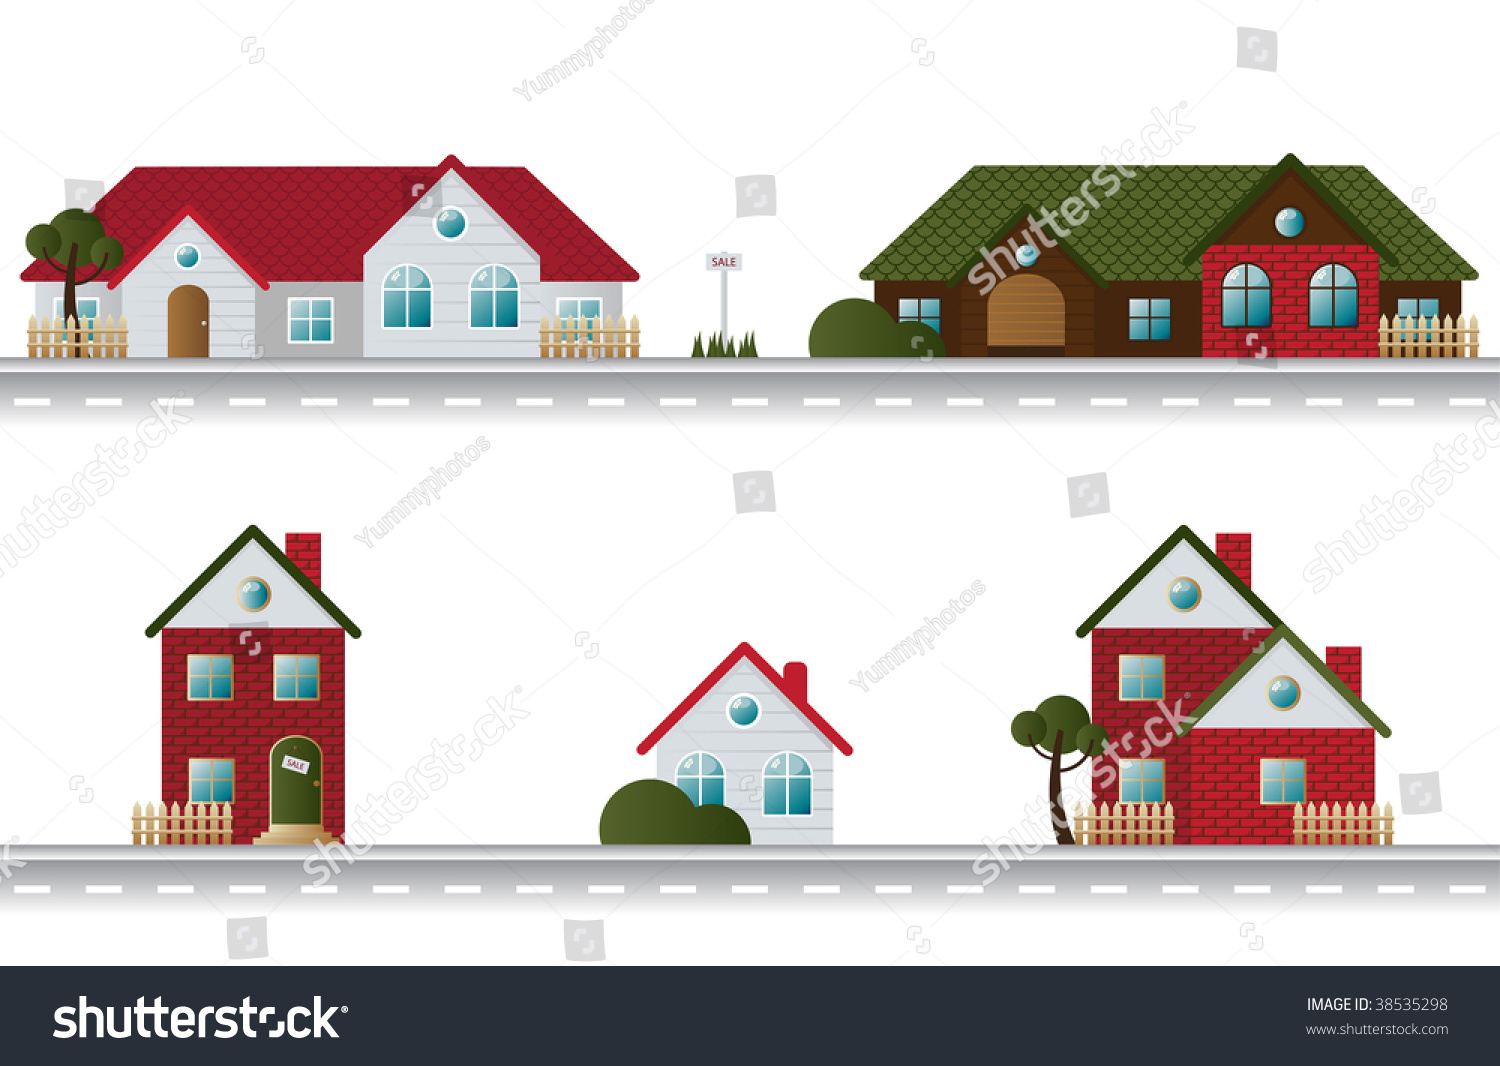 Astonishing Street Houses Different Architectural Styles Stock Vector 38535298 Largest Home Design Picture Inspirations Pitcheantrous